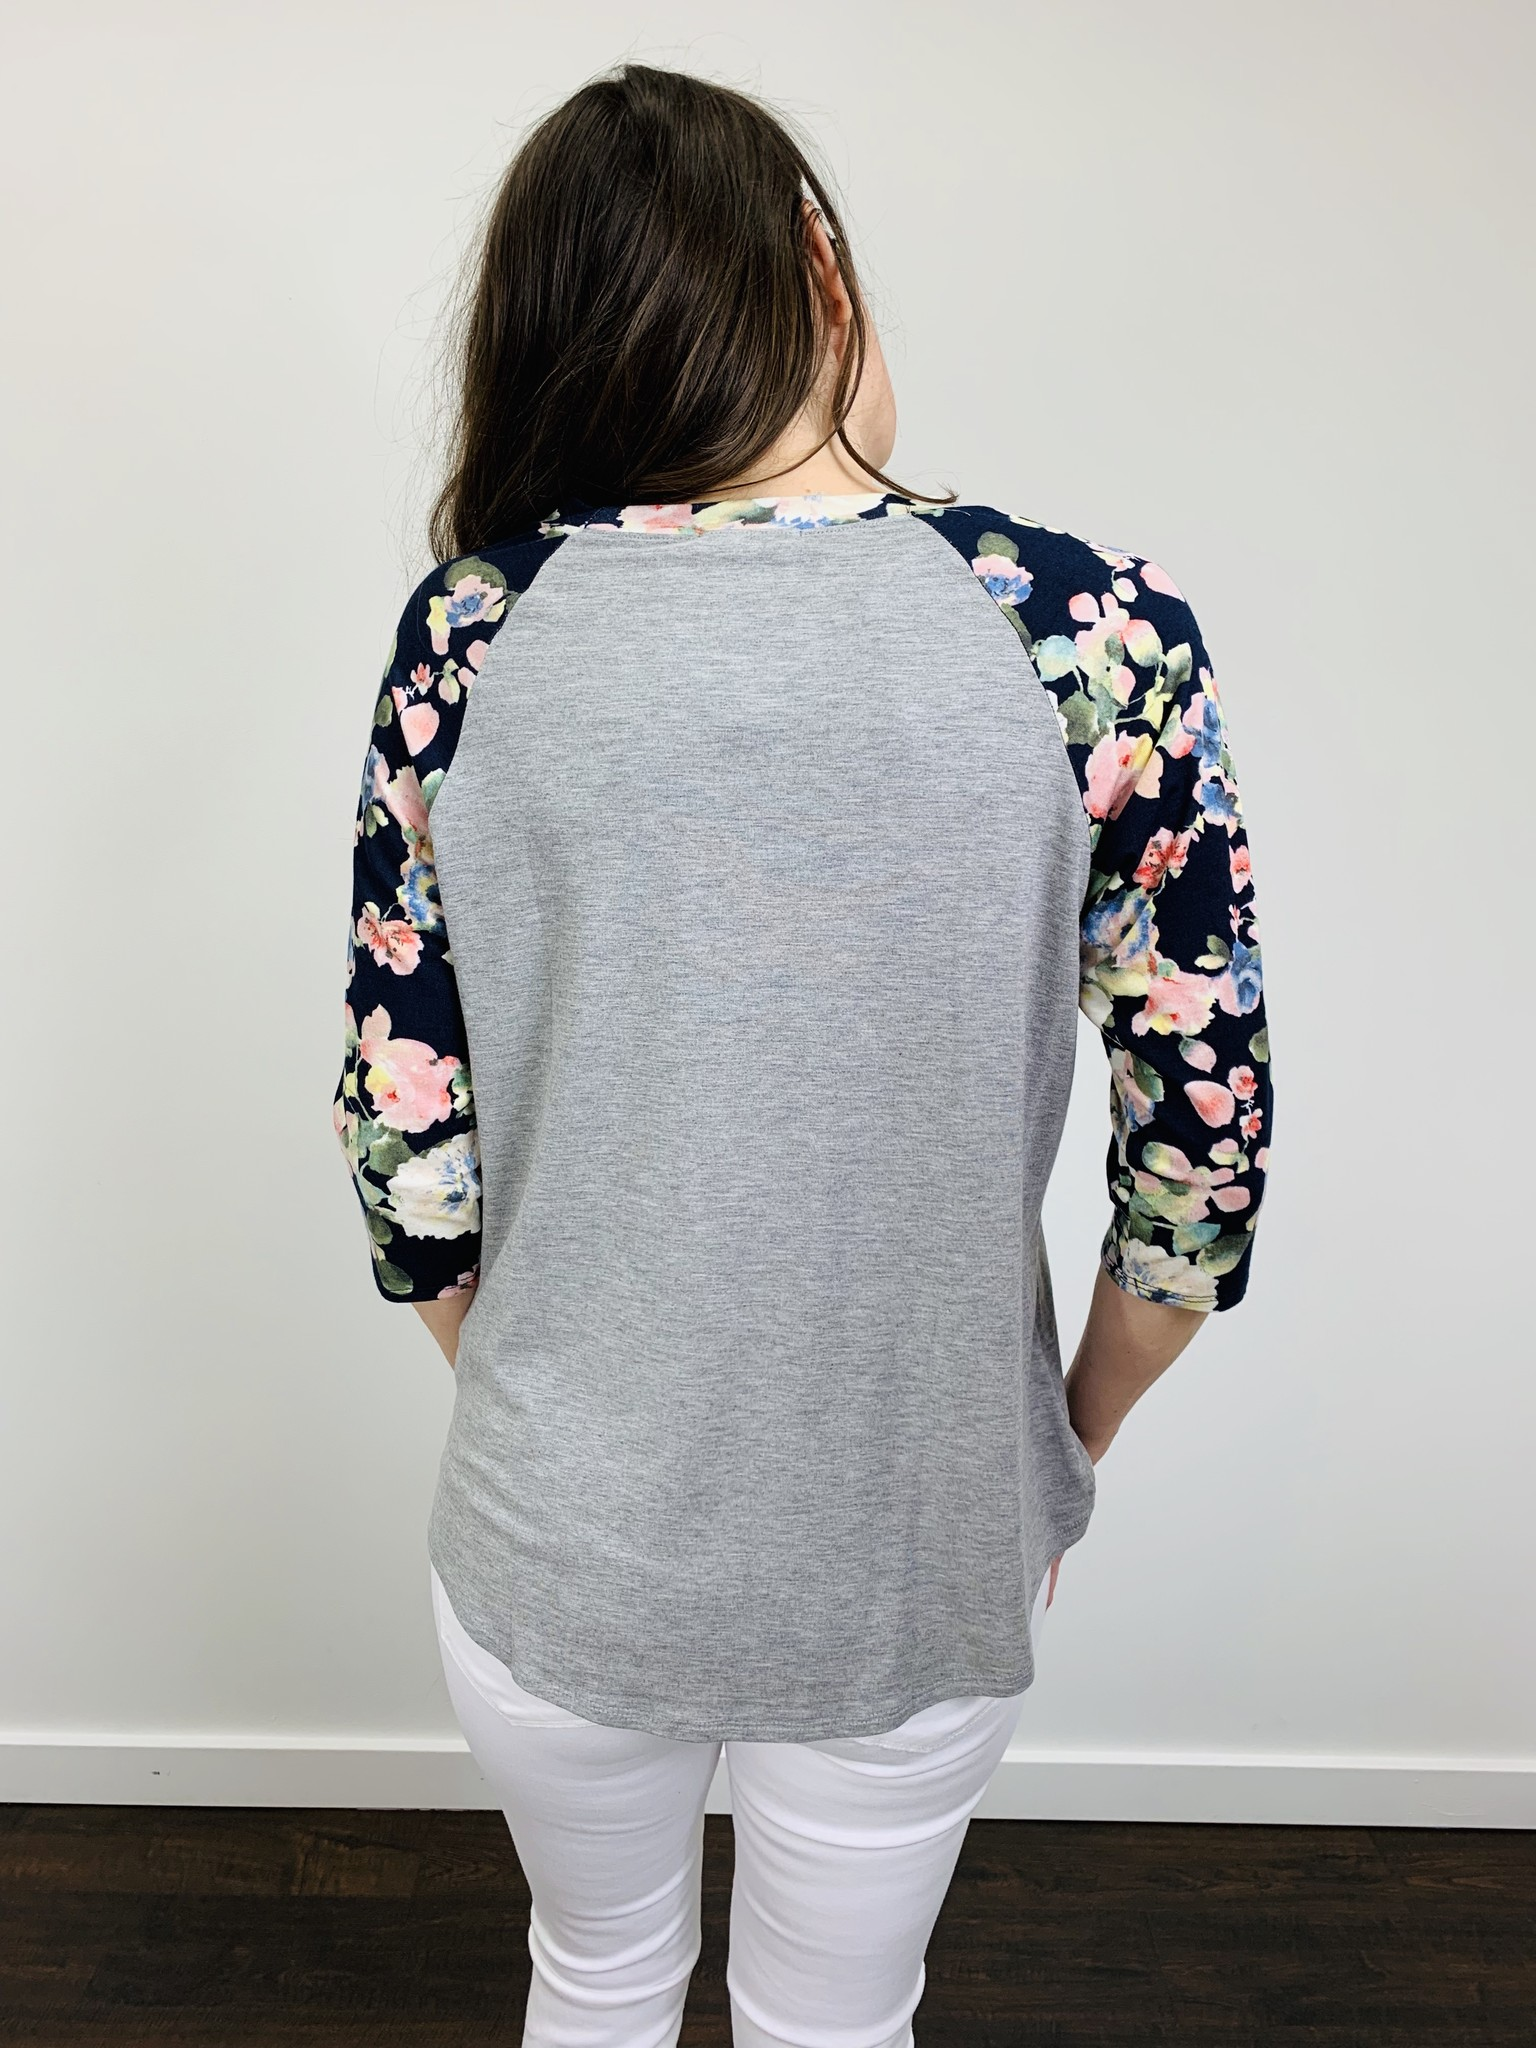 Downeast Ball Game Tee Navy Floral